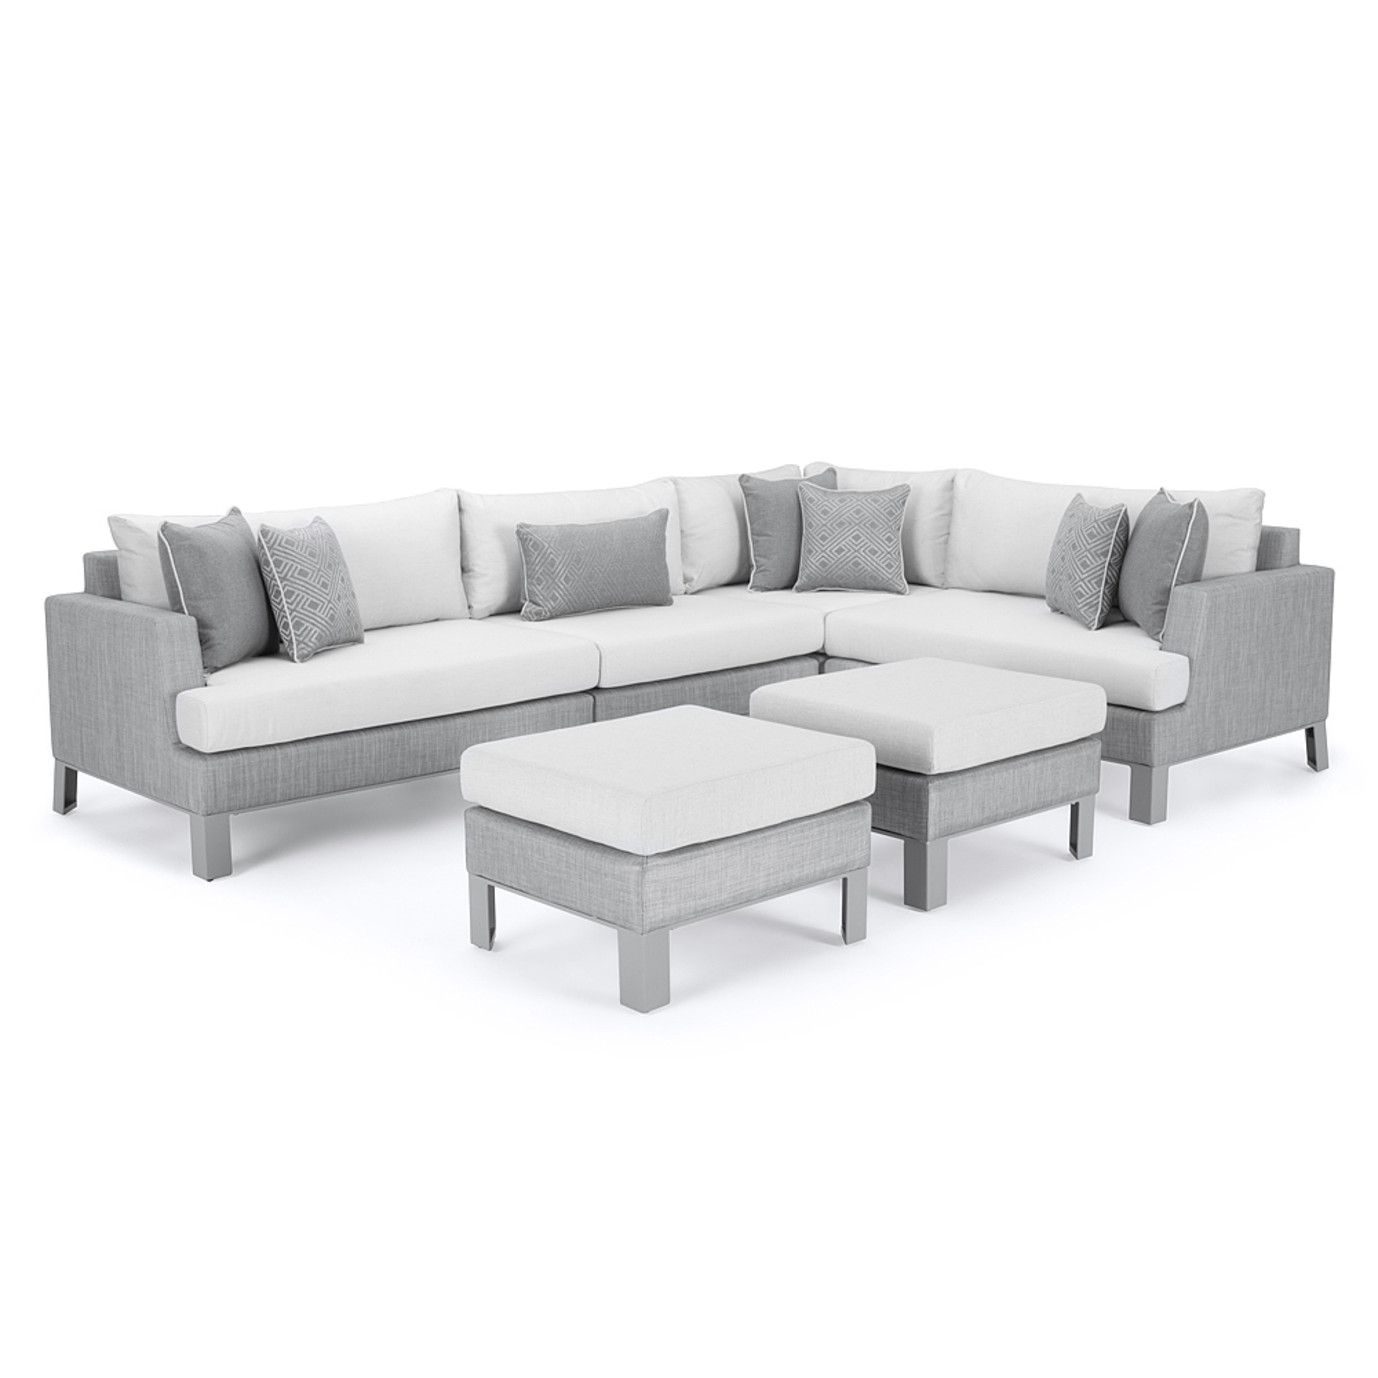 Legacy Furniture Covers - Portofino® Sling 6pc Sectional